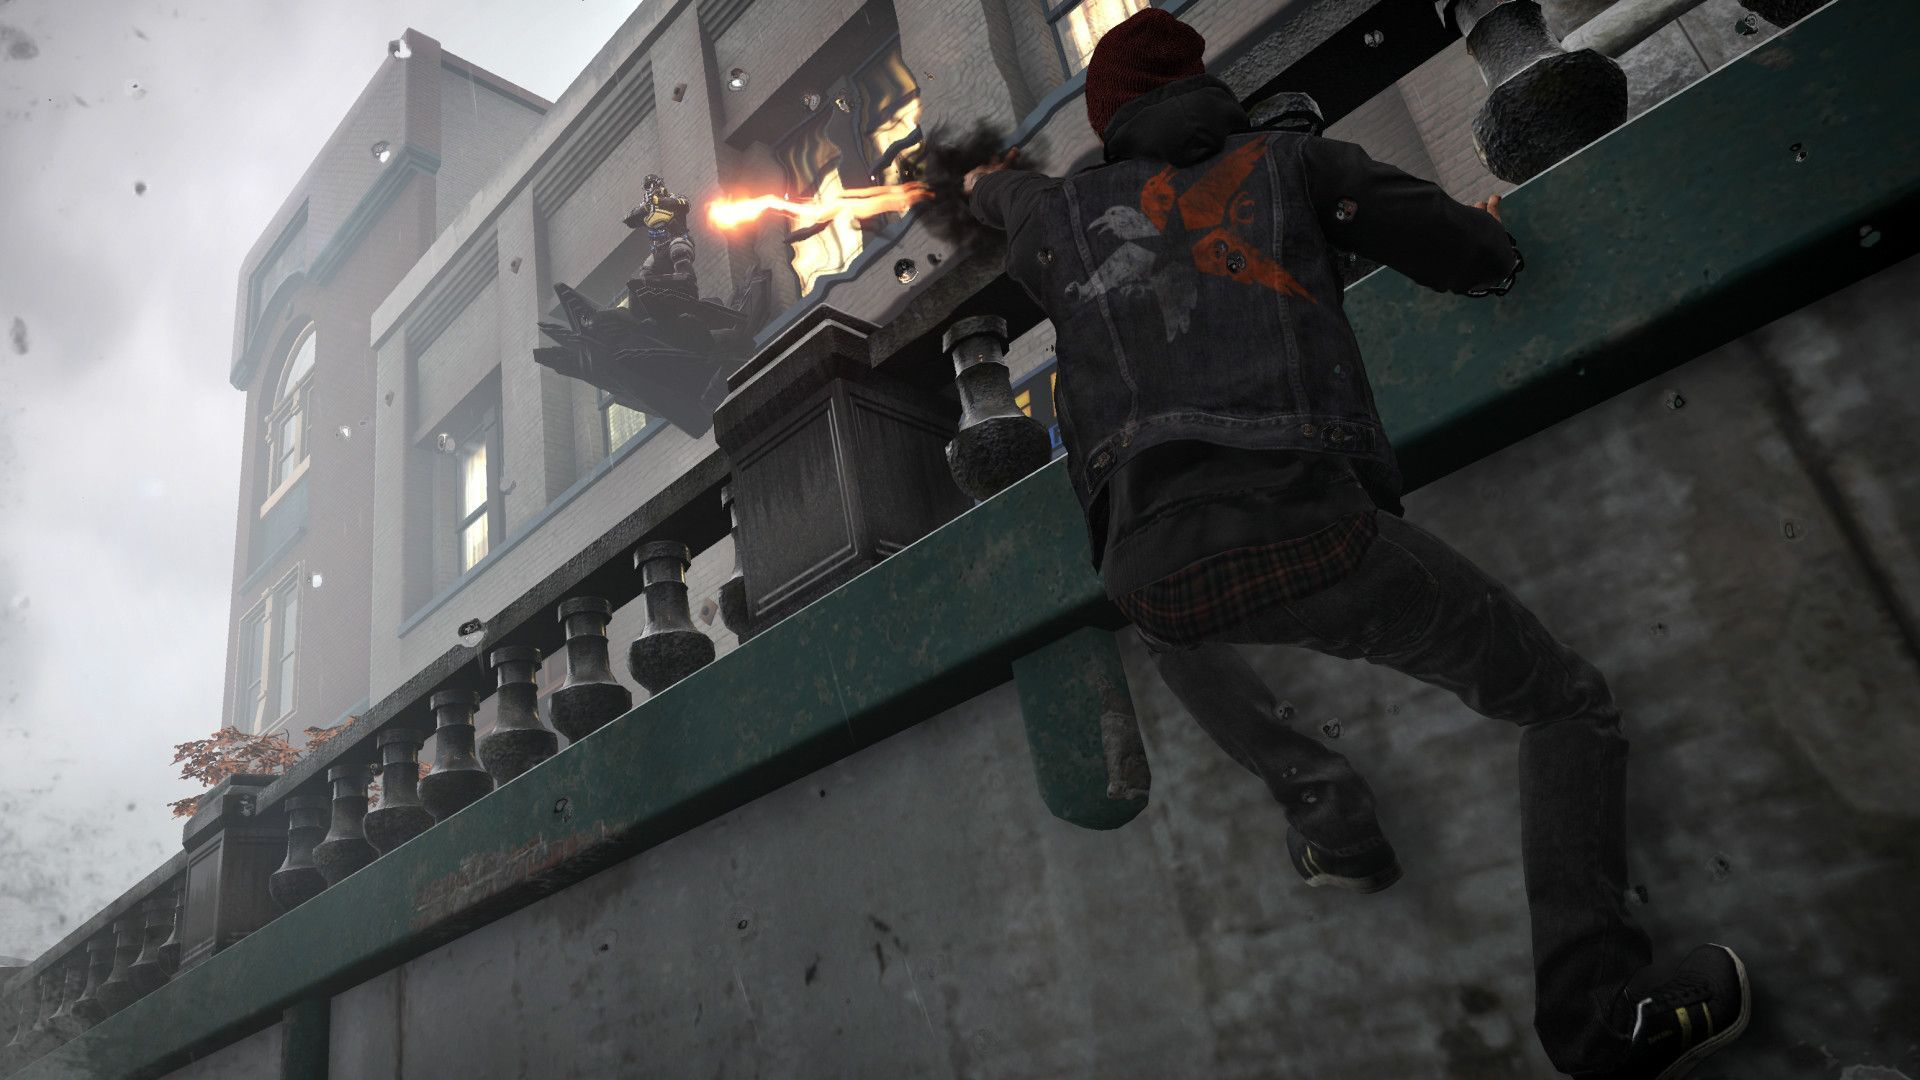 inFAMOUS: Second Son (PS4) - 12